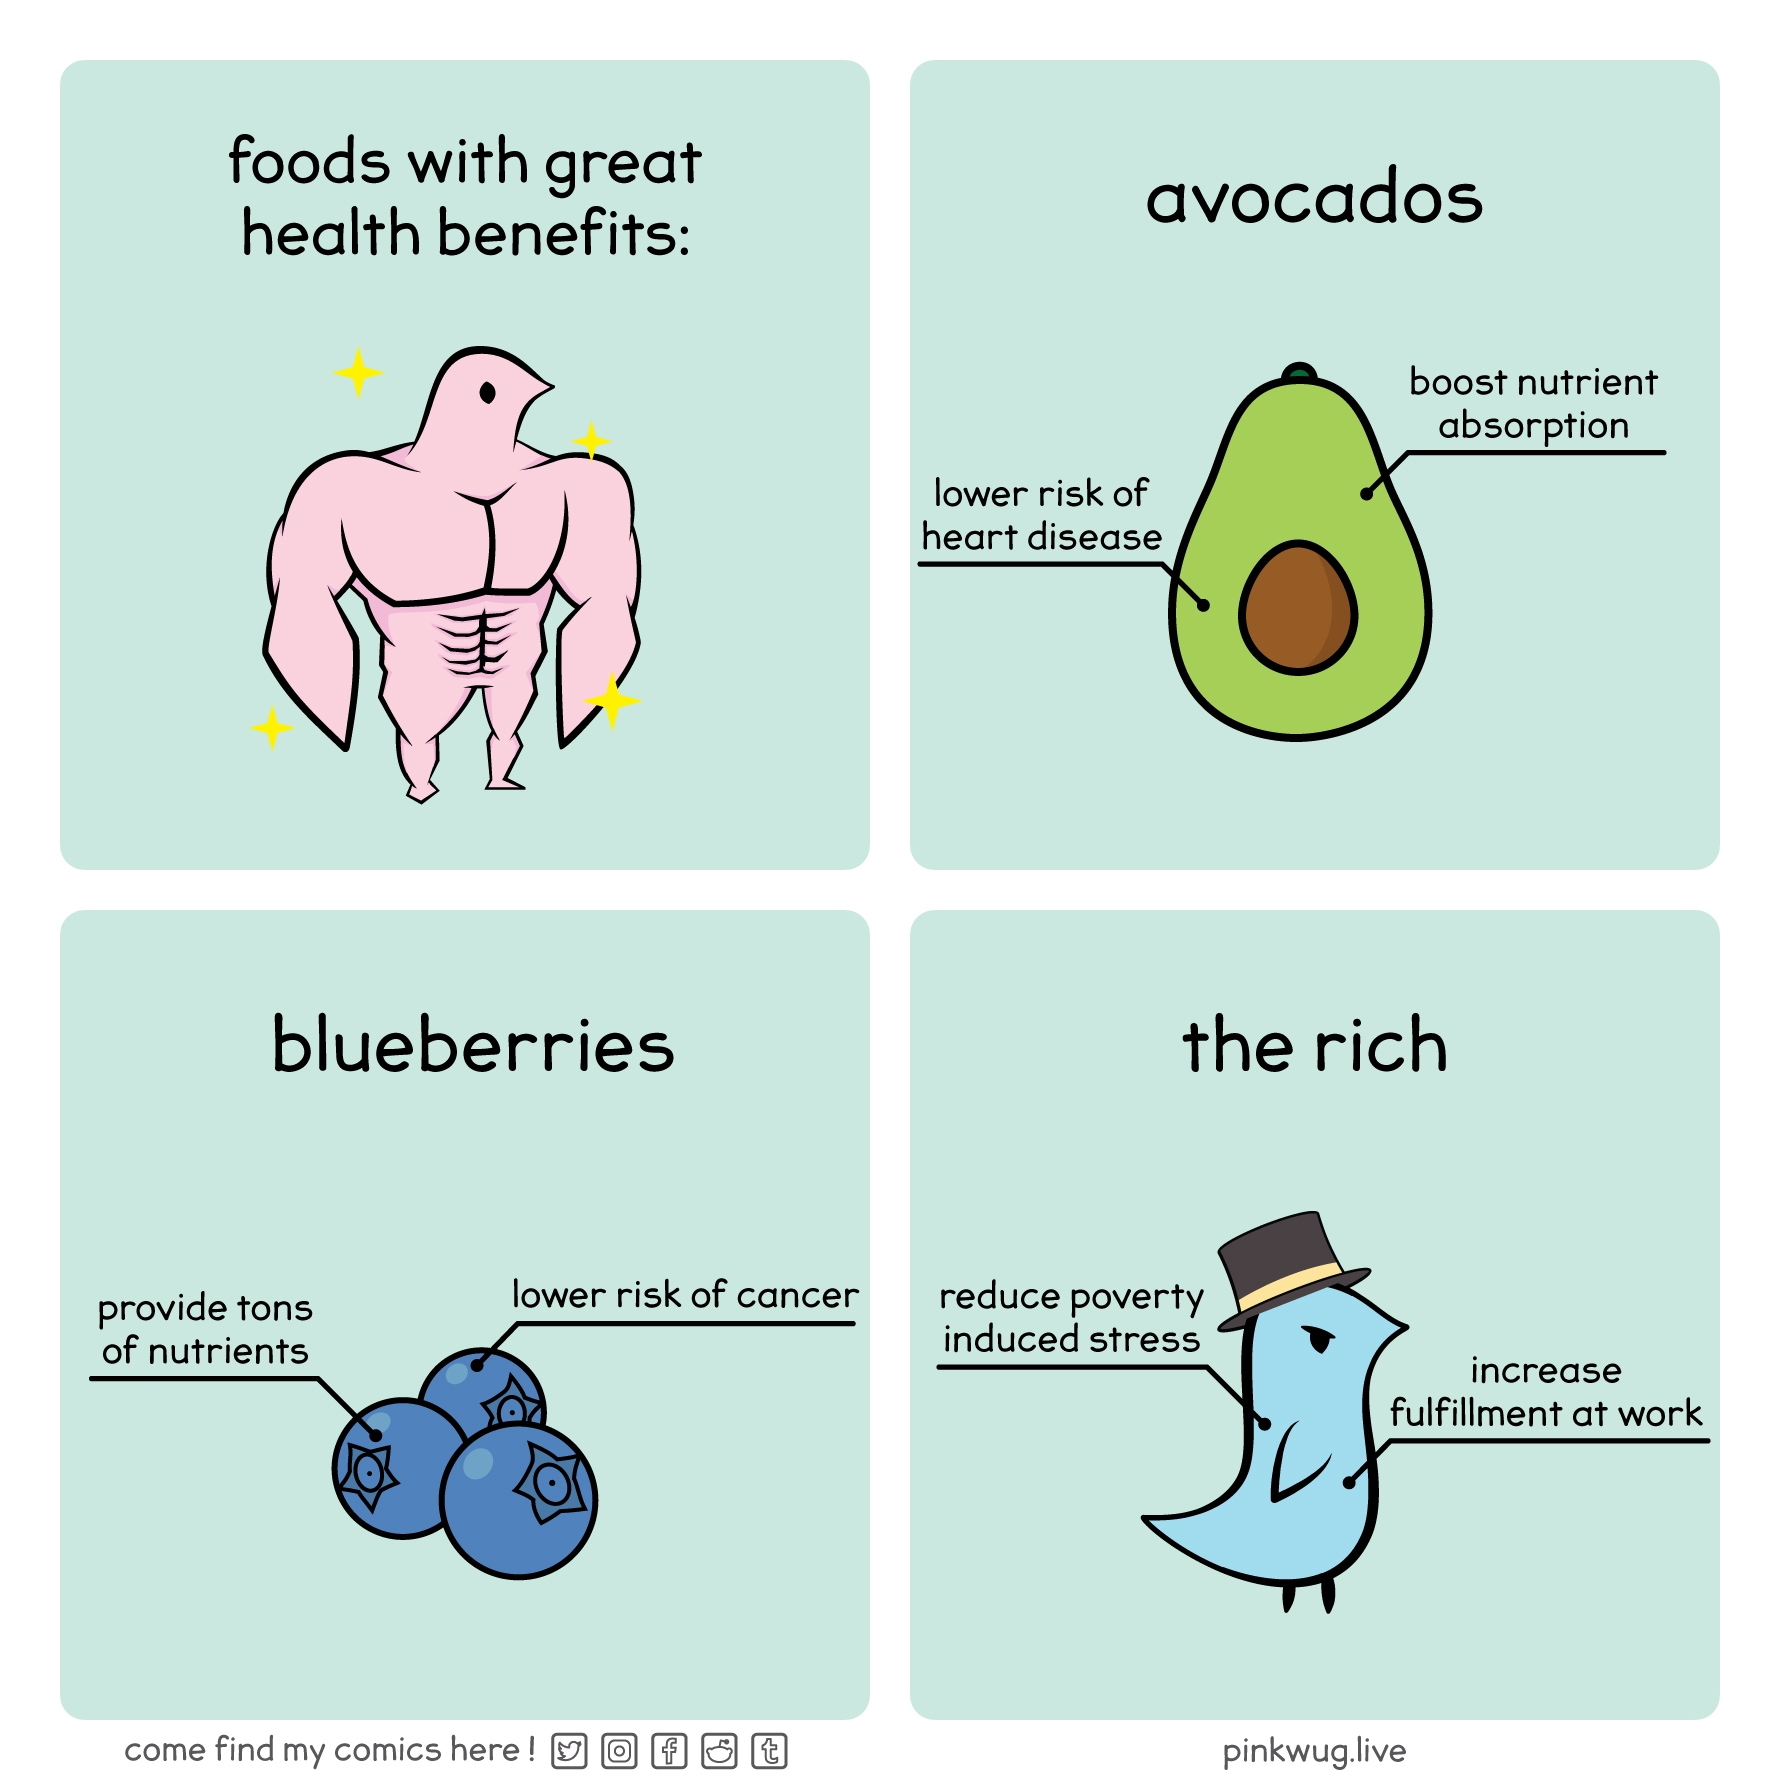 pinkwug comic: foods with great health benefits -avocados: lower risk of heart disease, boost nutrient absorption -blueberries: provide tons of nutrients, lower risk of cancer -the rich: reduce poverty induced stress, increase fulfillment at work